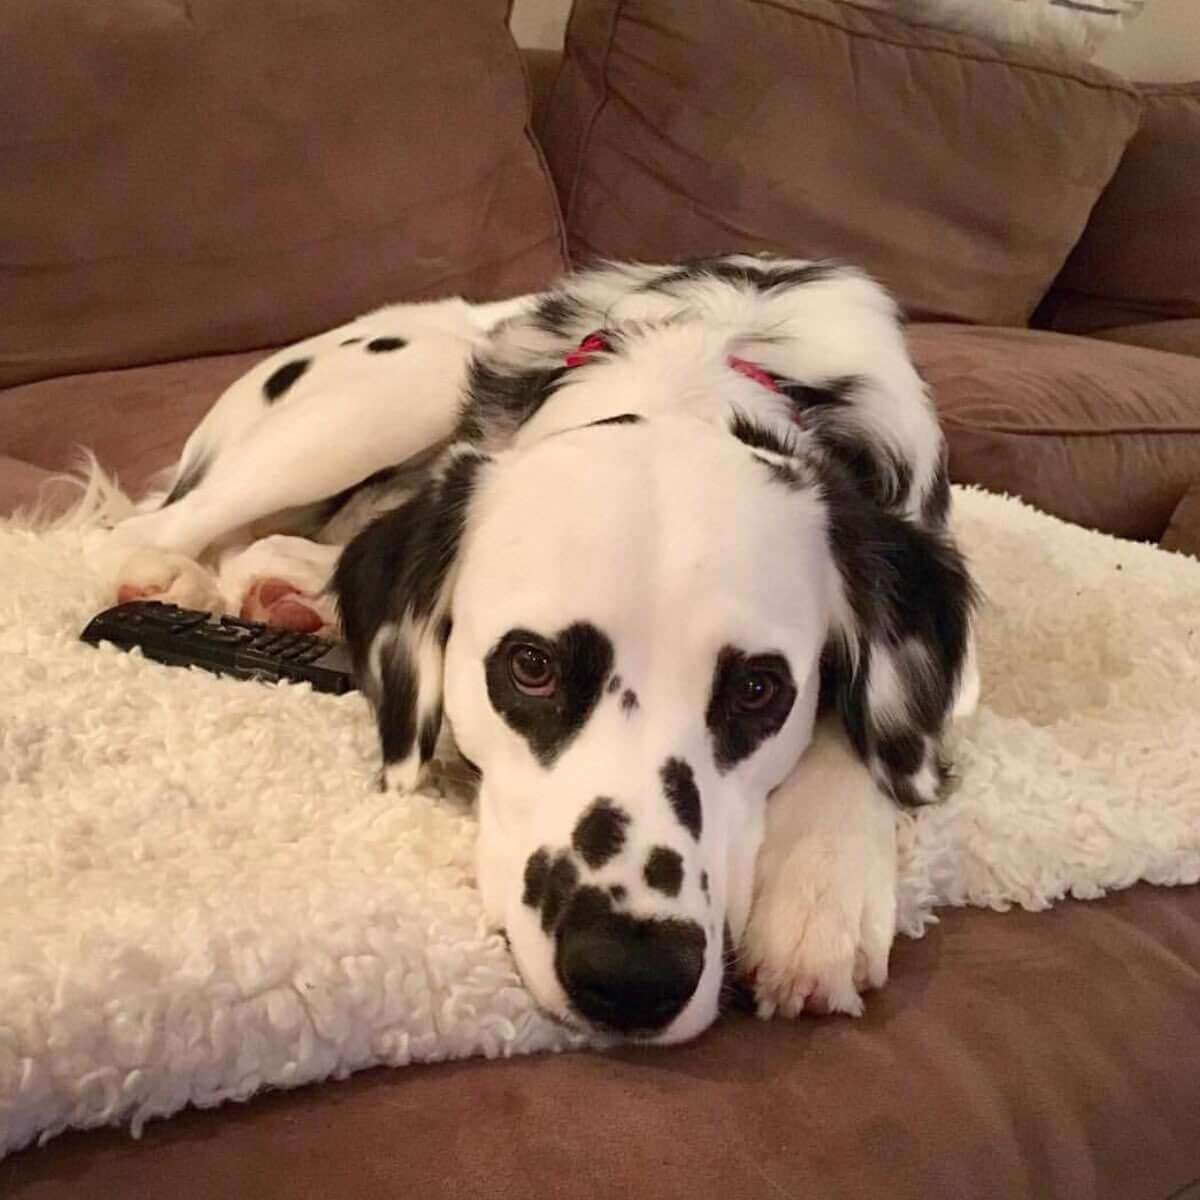 charlie the dalmatian heart shaped eyes 2 (1)